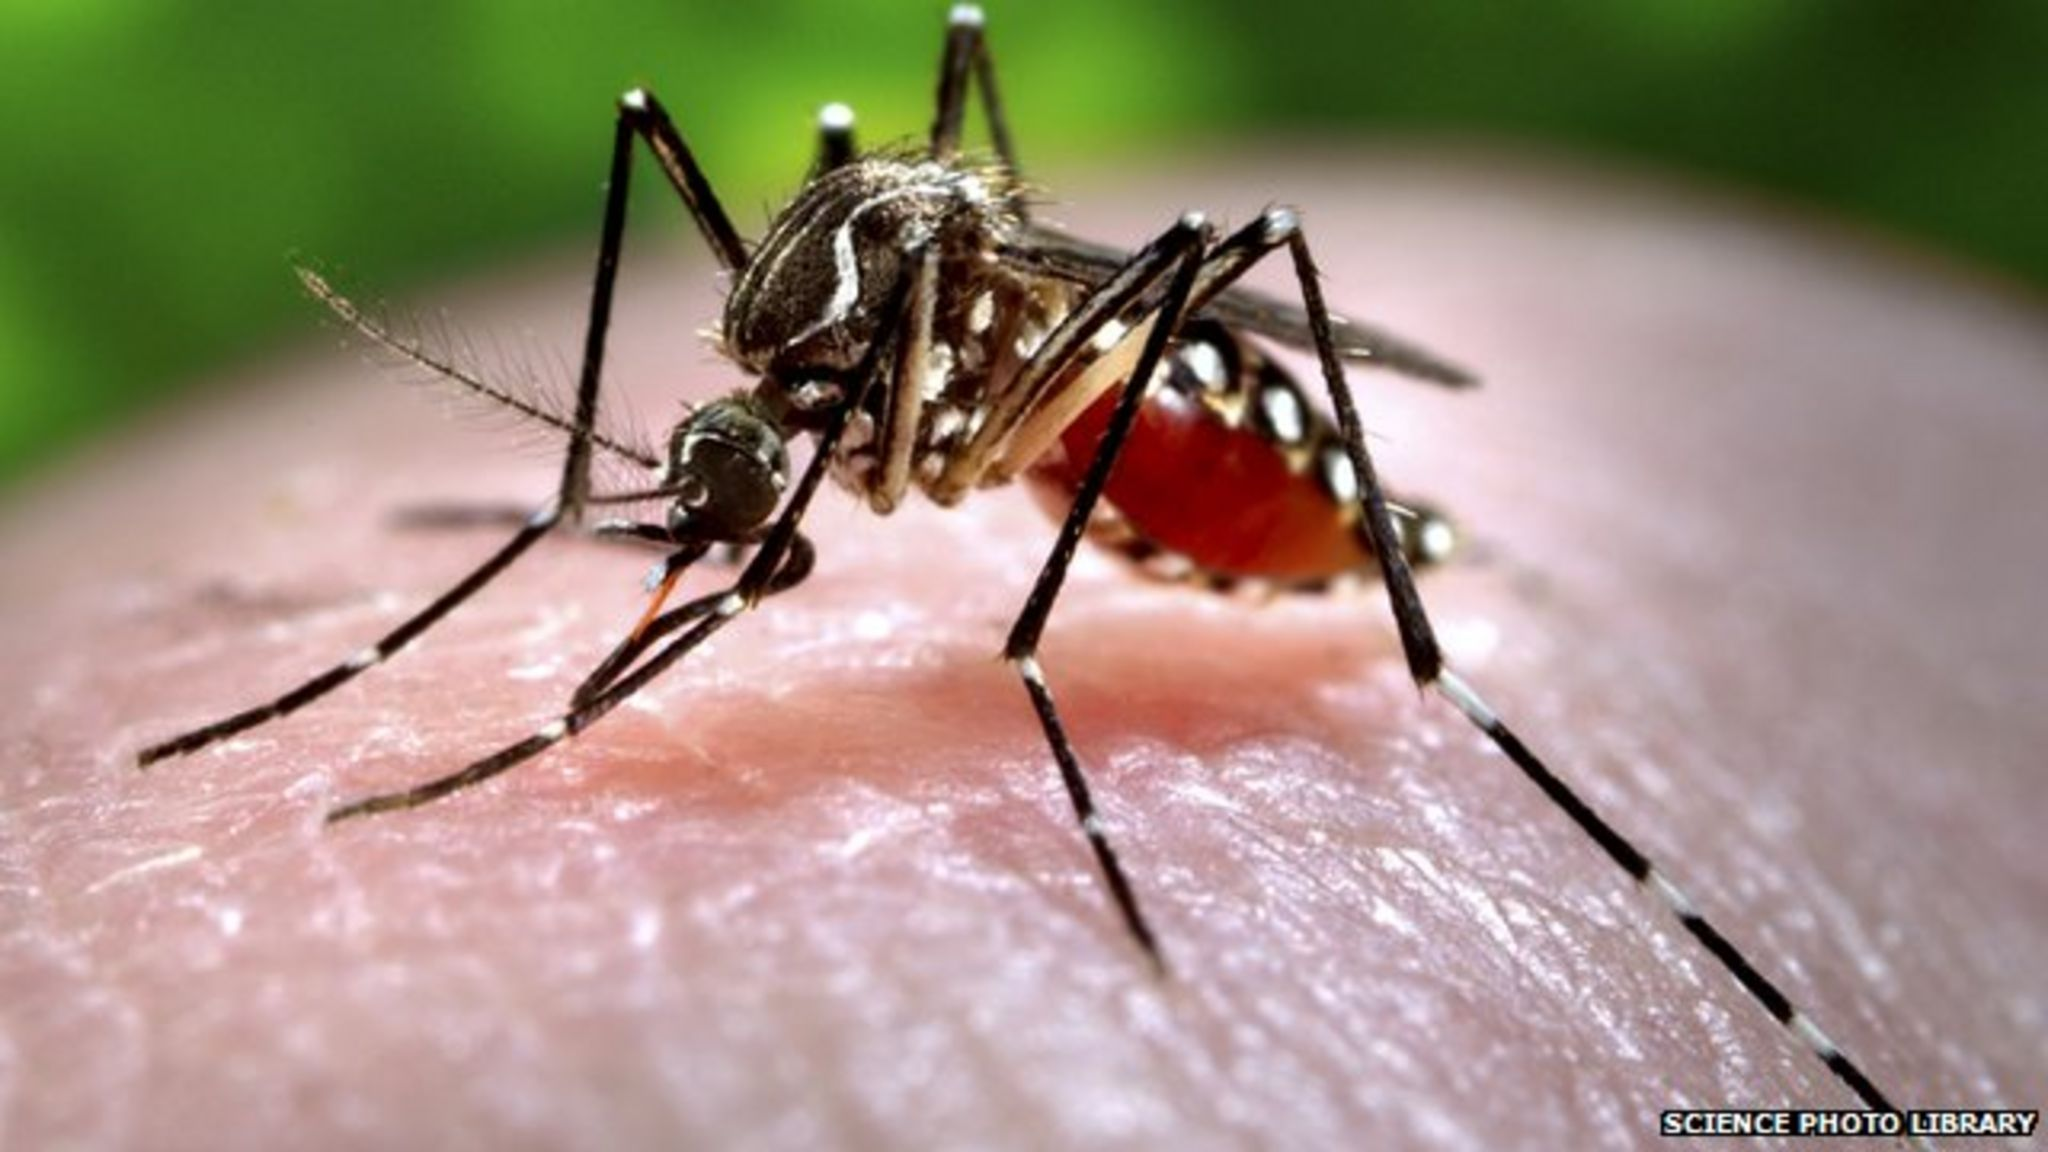 A mosquito feeding on a human